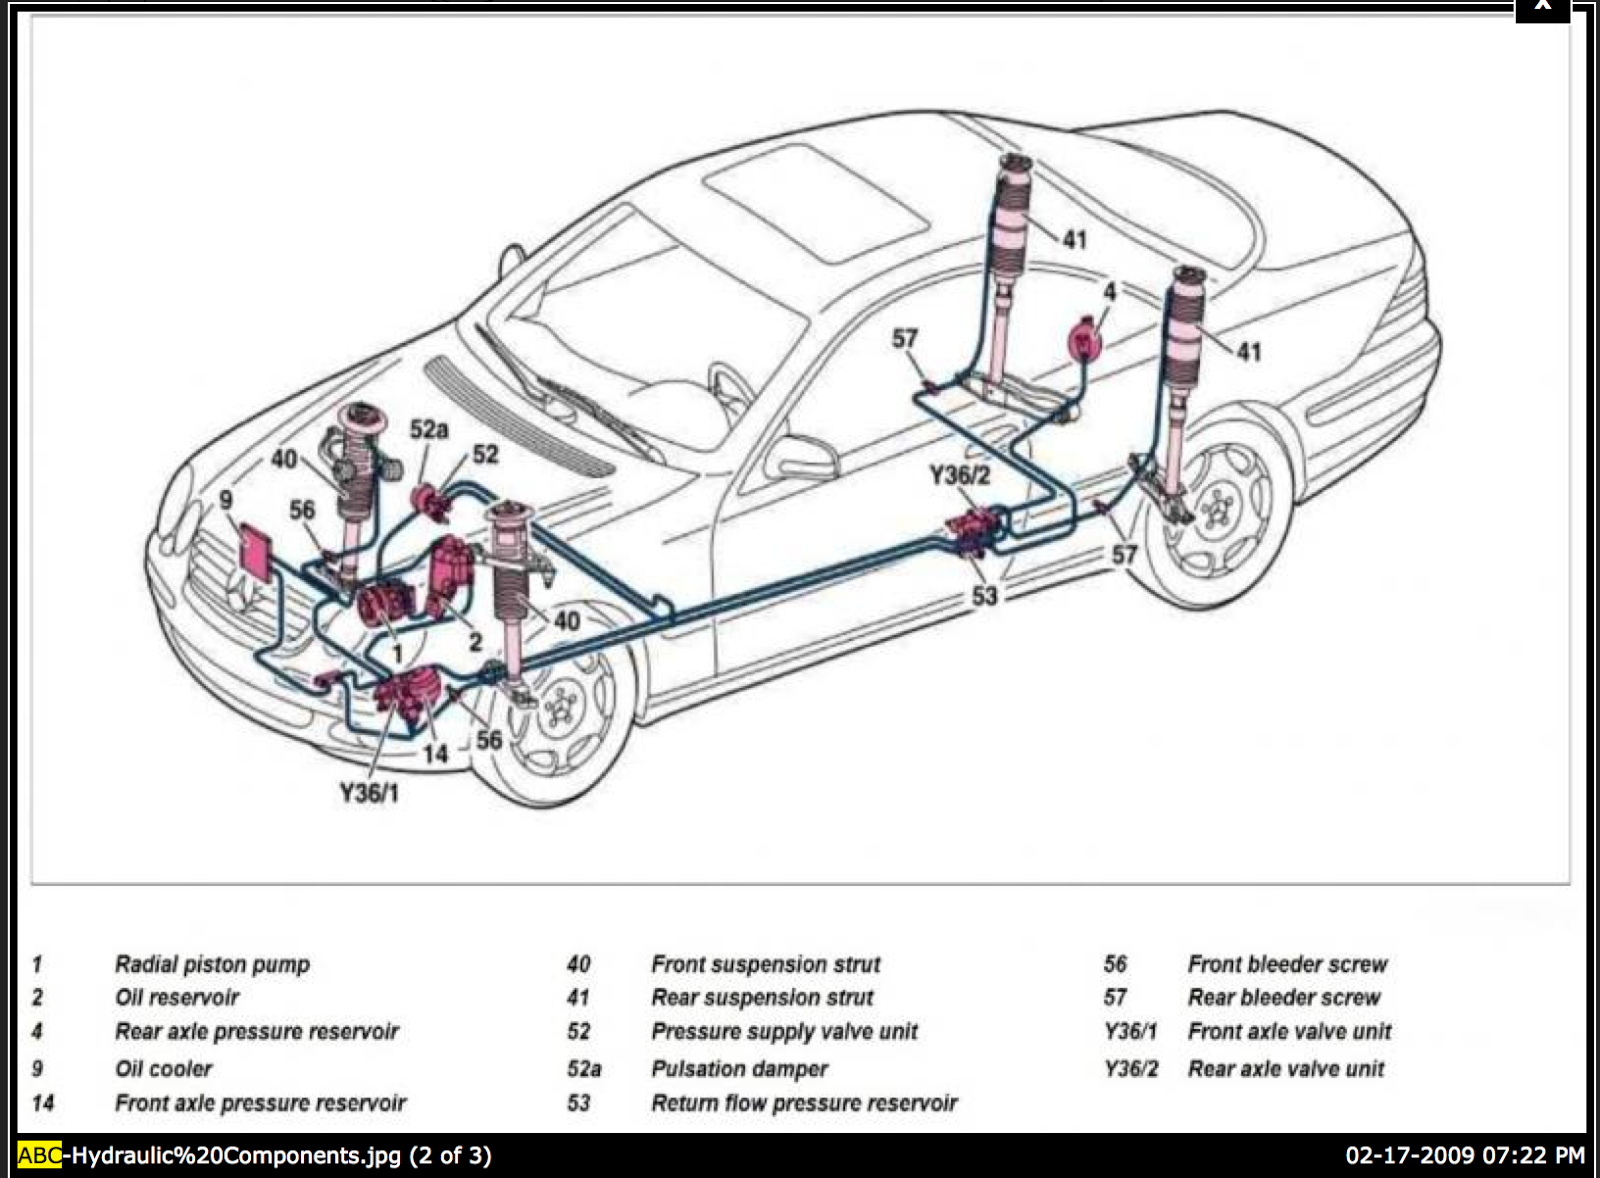 Fuel Filter Diagram Mercedes Benz C180 Excellent Electrical Wiring Abc System Troubleshooting Guide Mb Sl500 Pinterest 2013